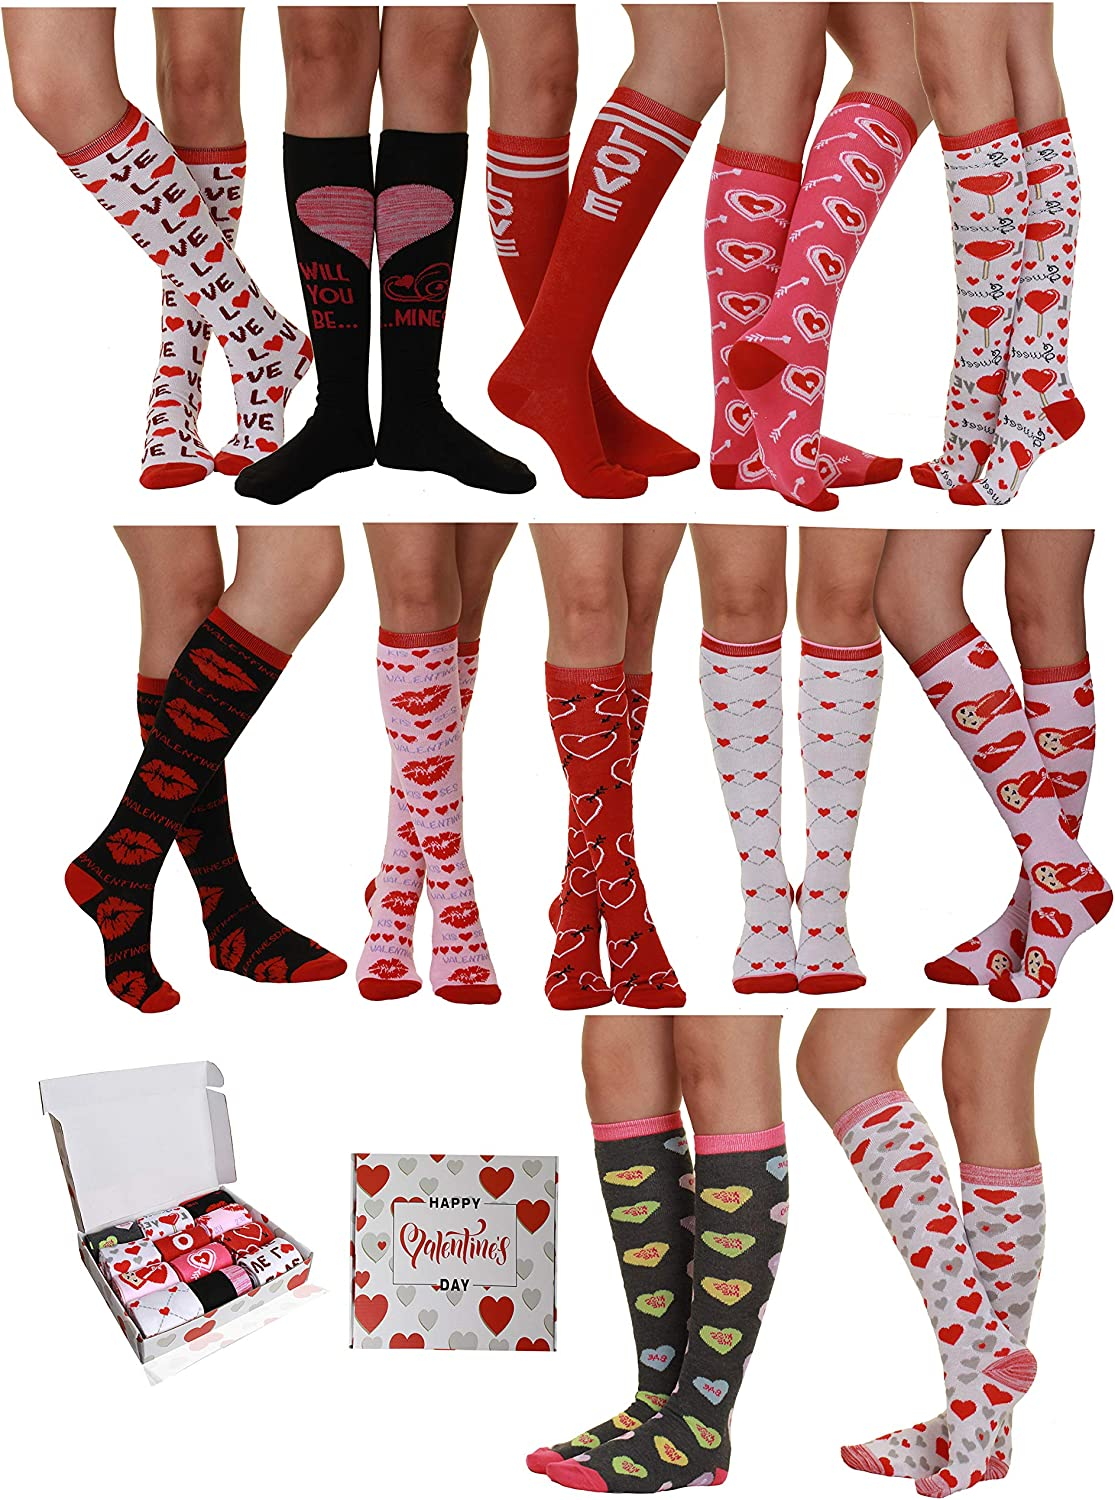 12 Pair Valentine'S Day Soft Crew Socks Xoxo Kiss Hug Love Prints, Women'S Size 9-11